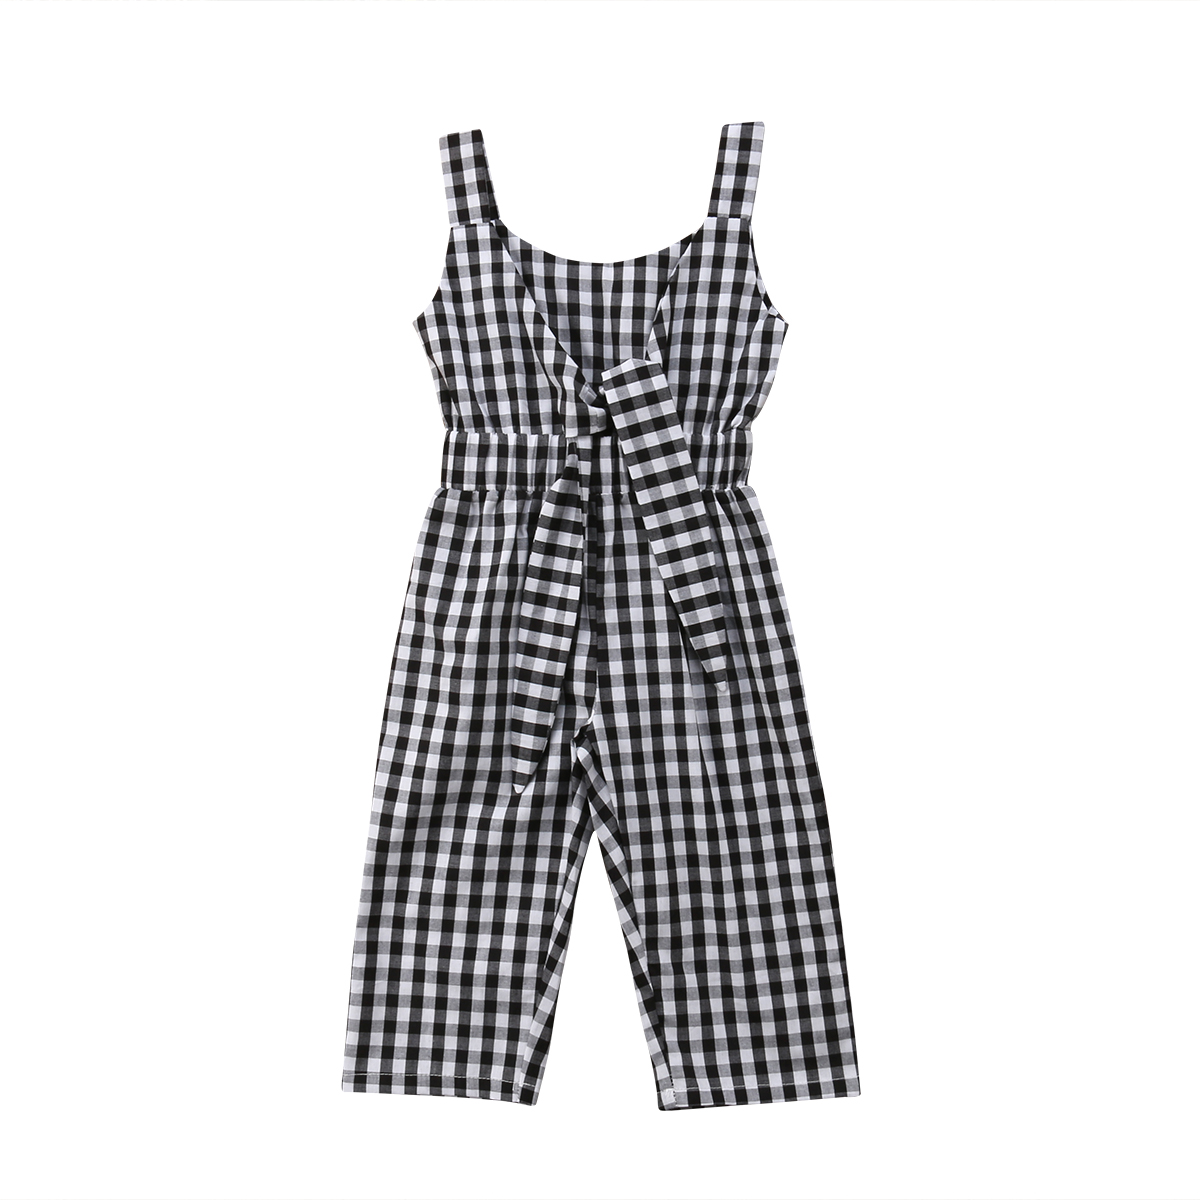 Baby Girls Romper Bodysuit Jumpsuit Plaids Overall Skirt Outfit Set